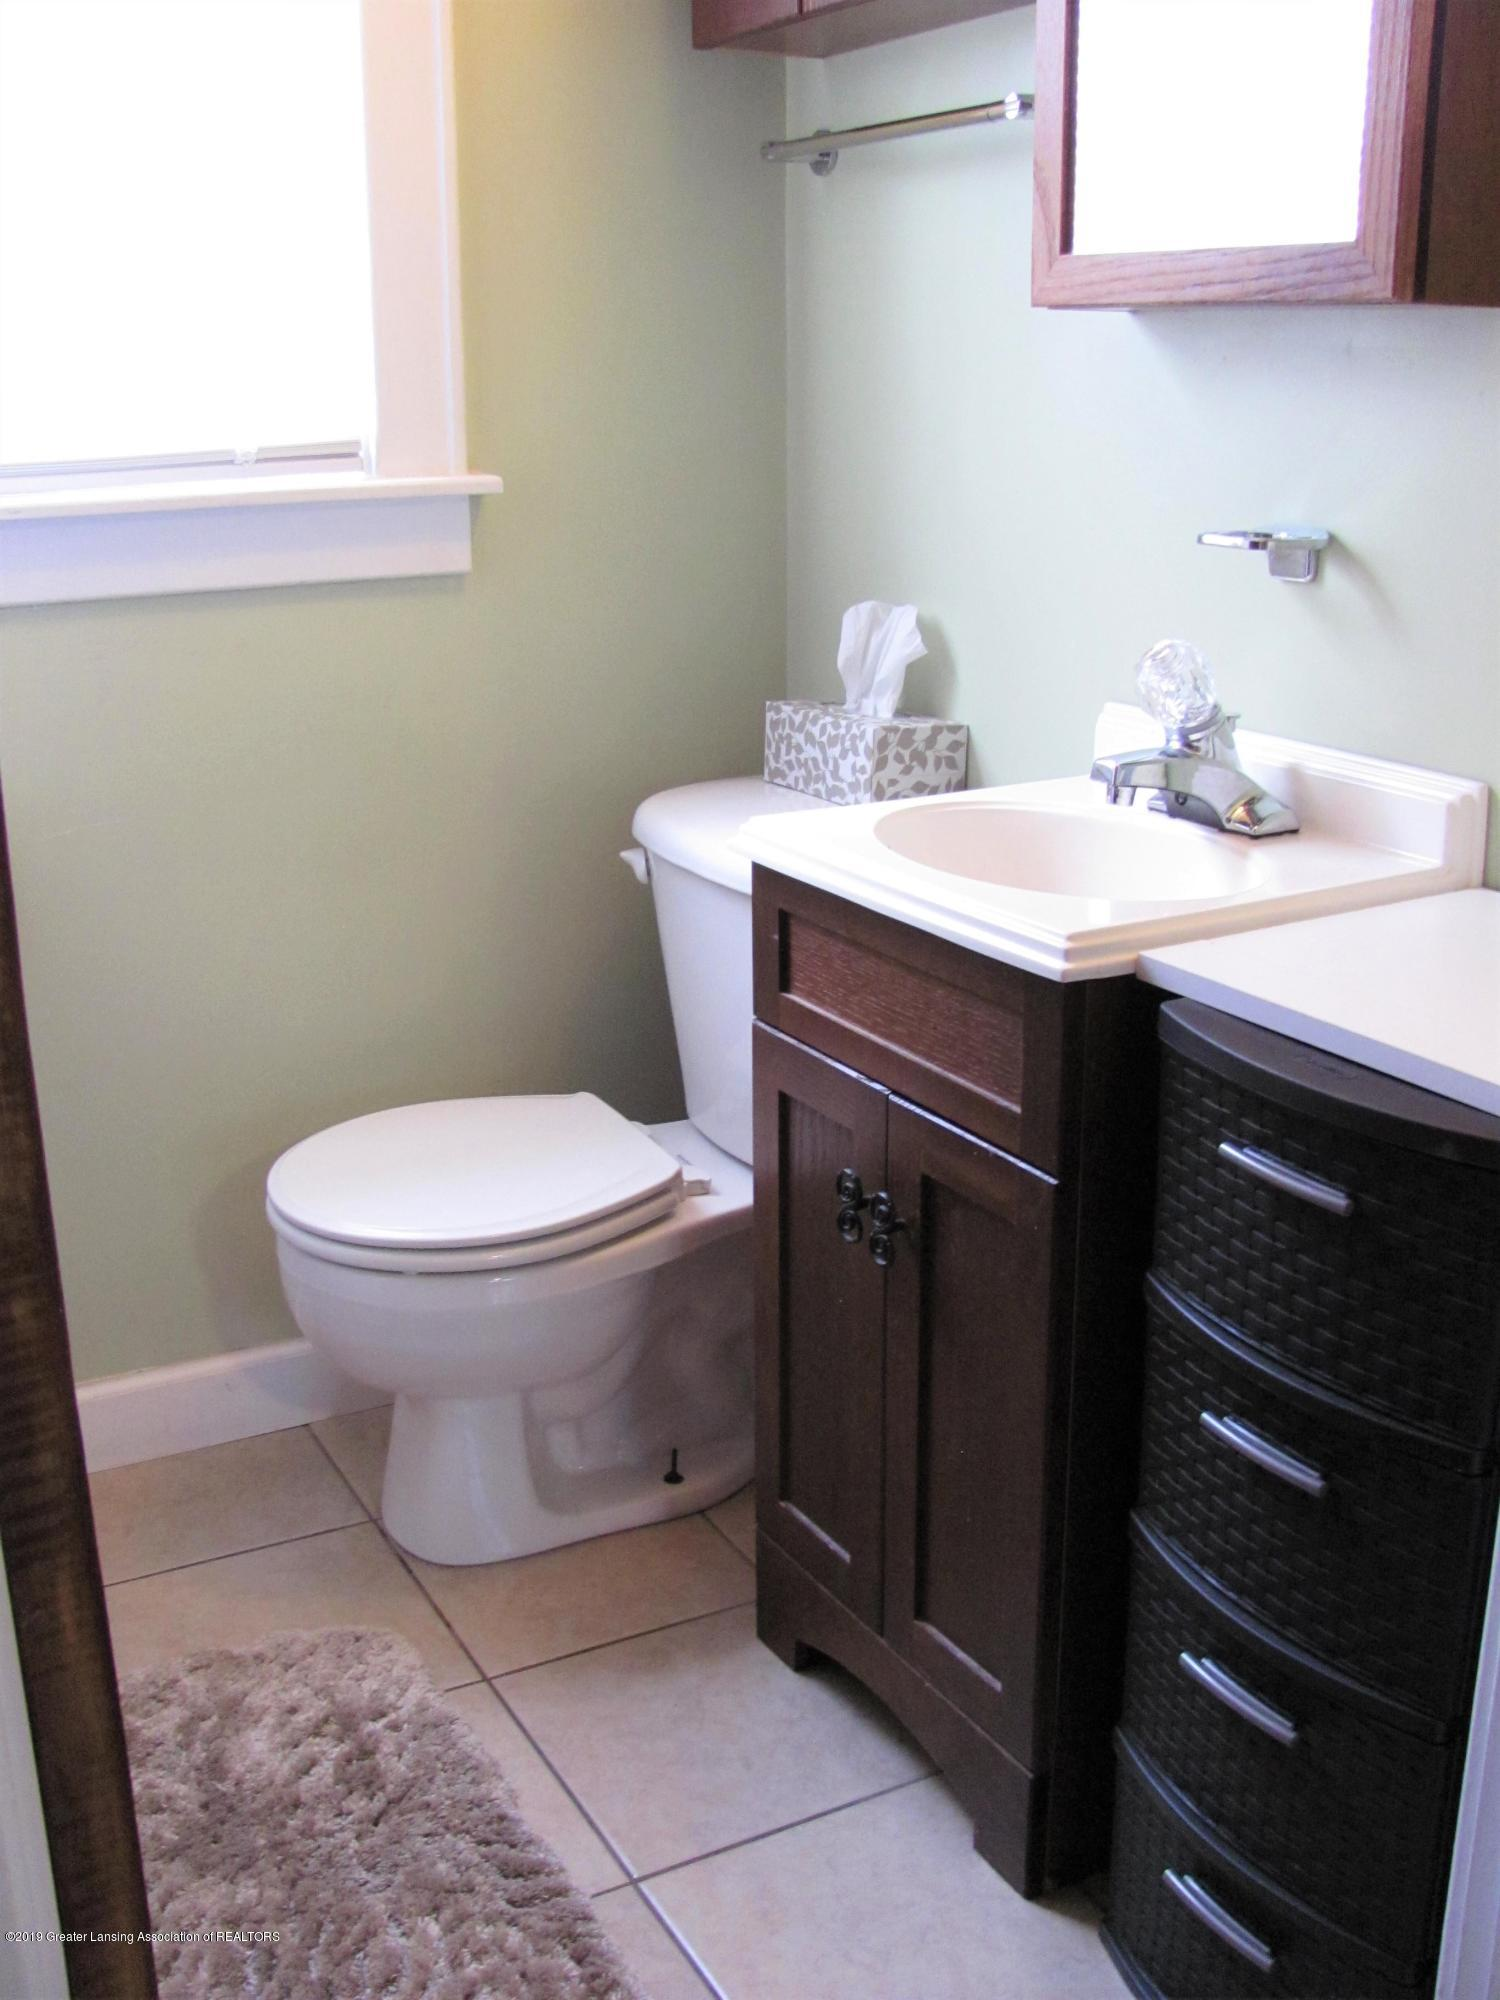 629 N Fairview Ave - Full bathroom - 24